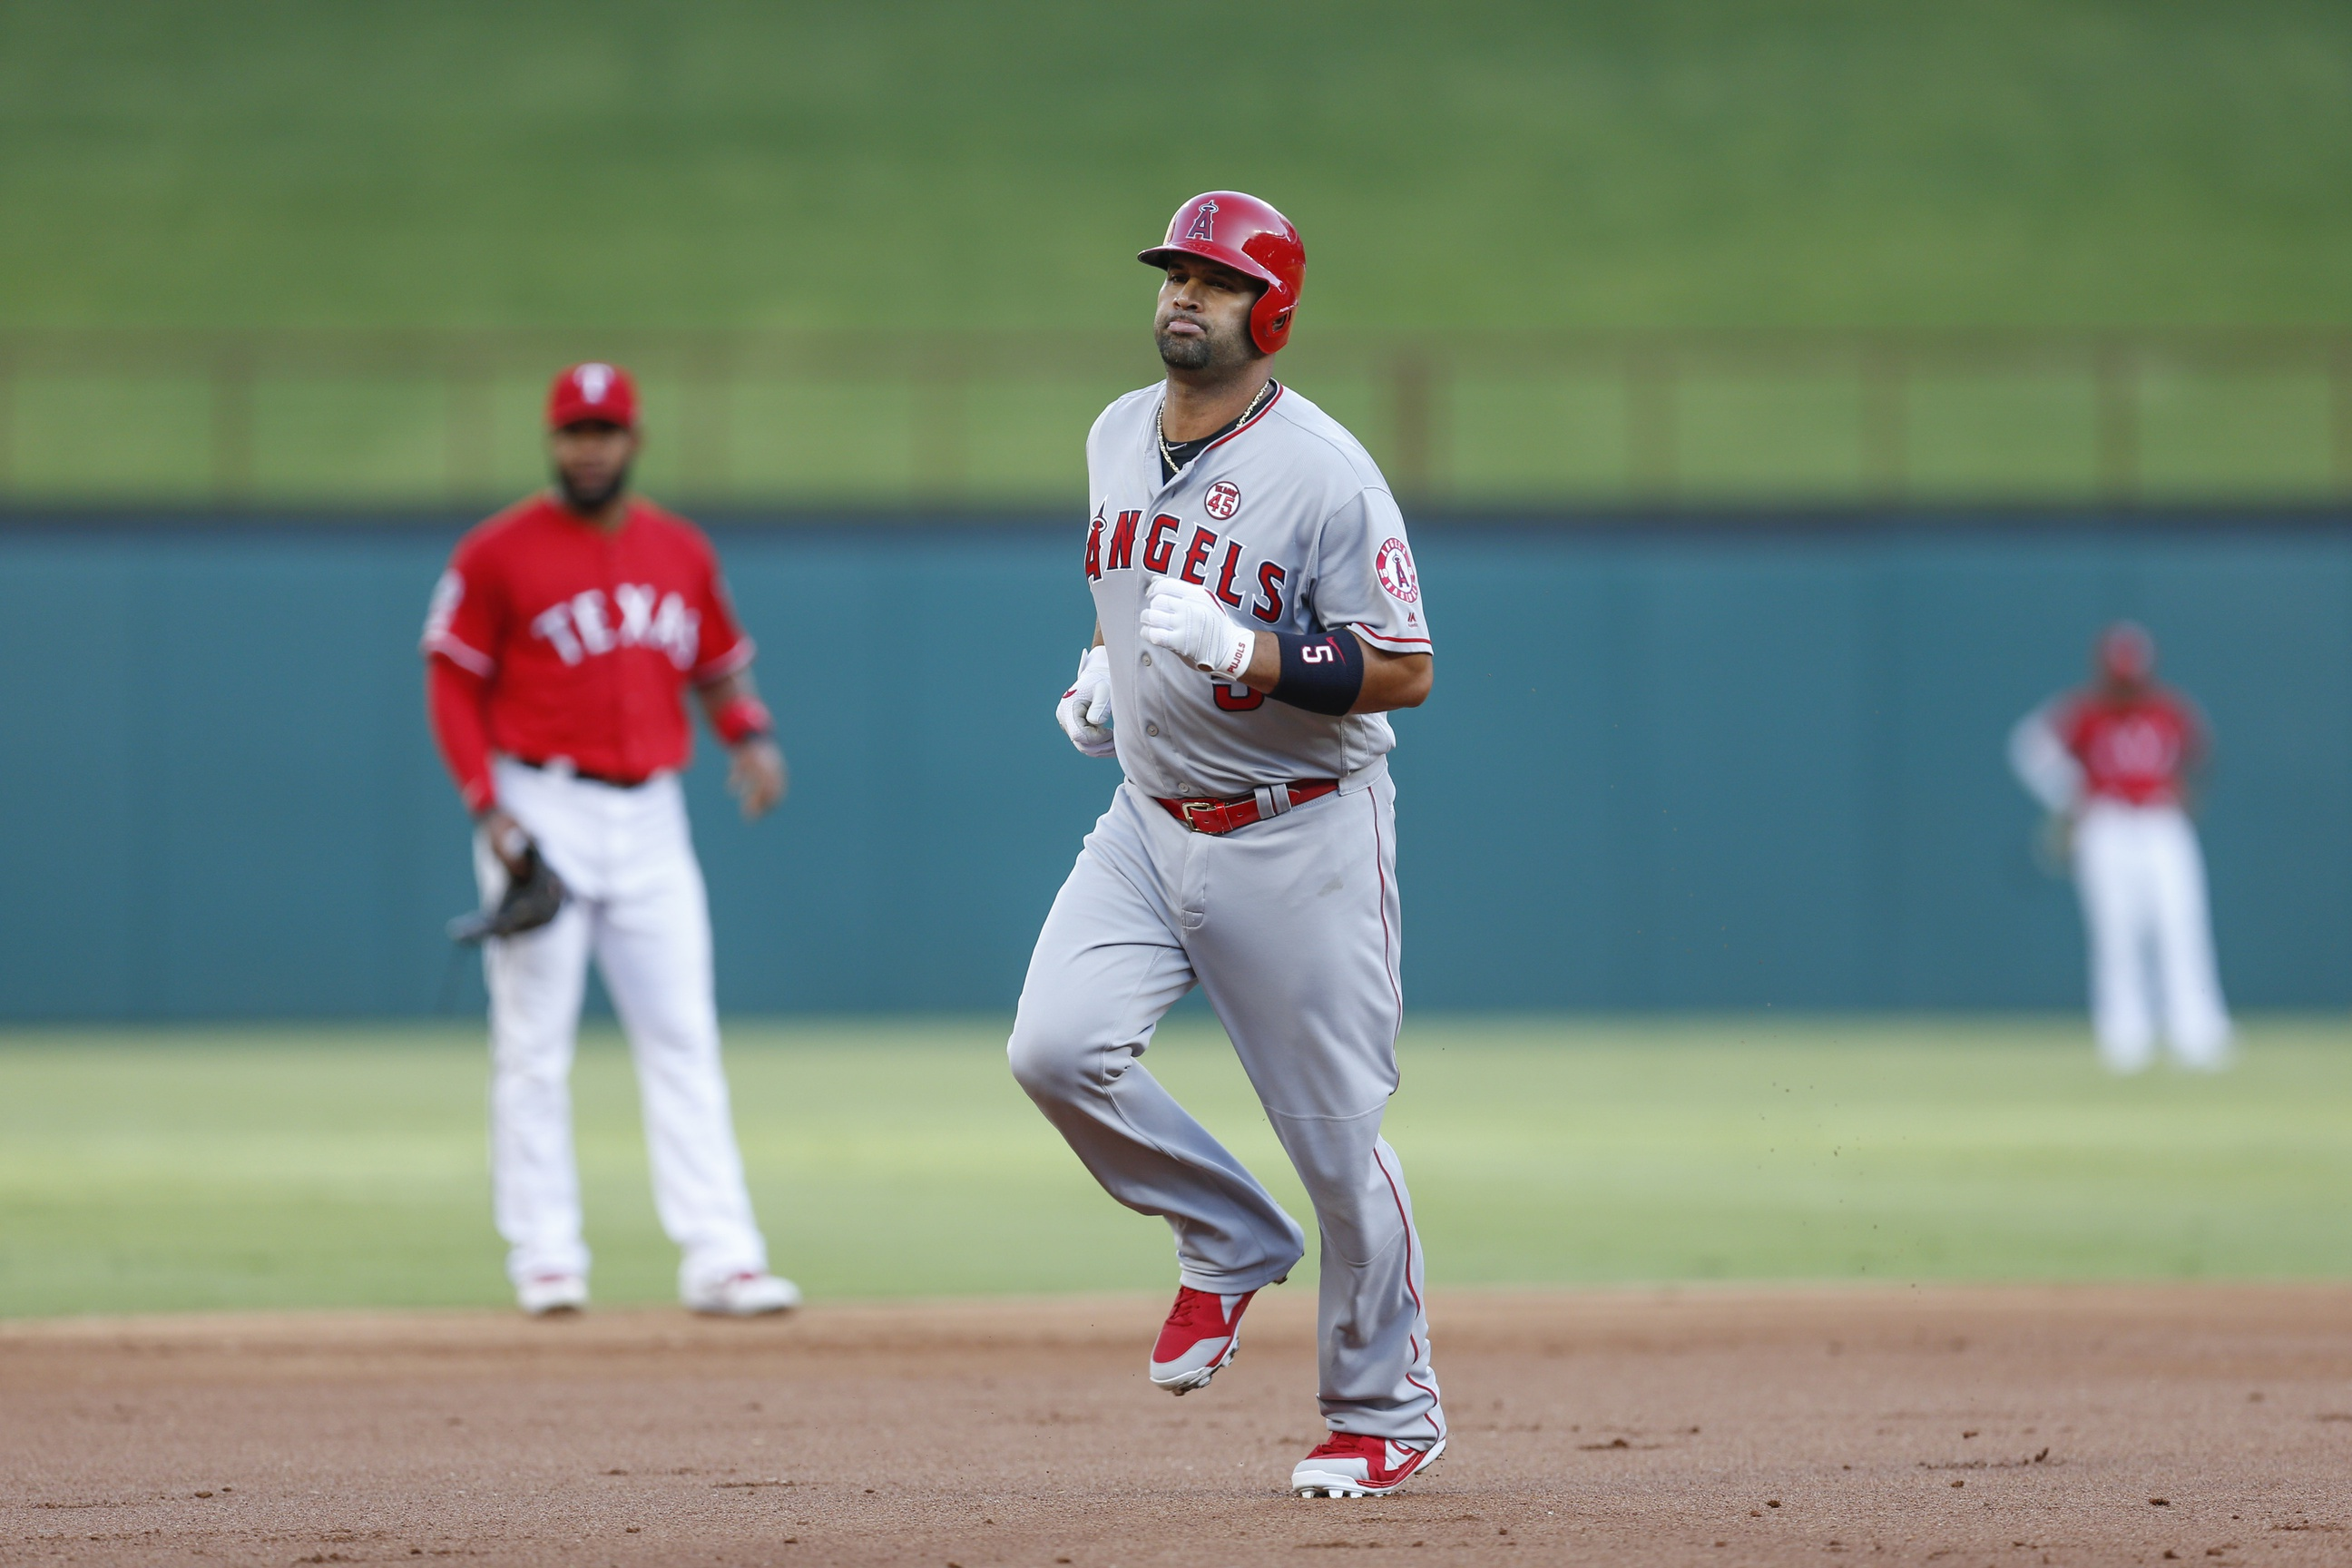 The Best Thing in Baseball This Week: Pujols Steals a Second of Time